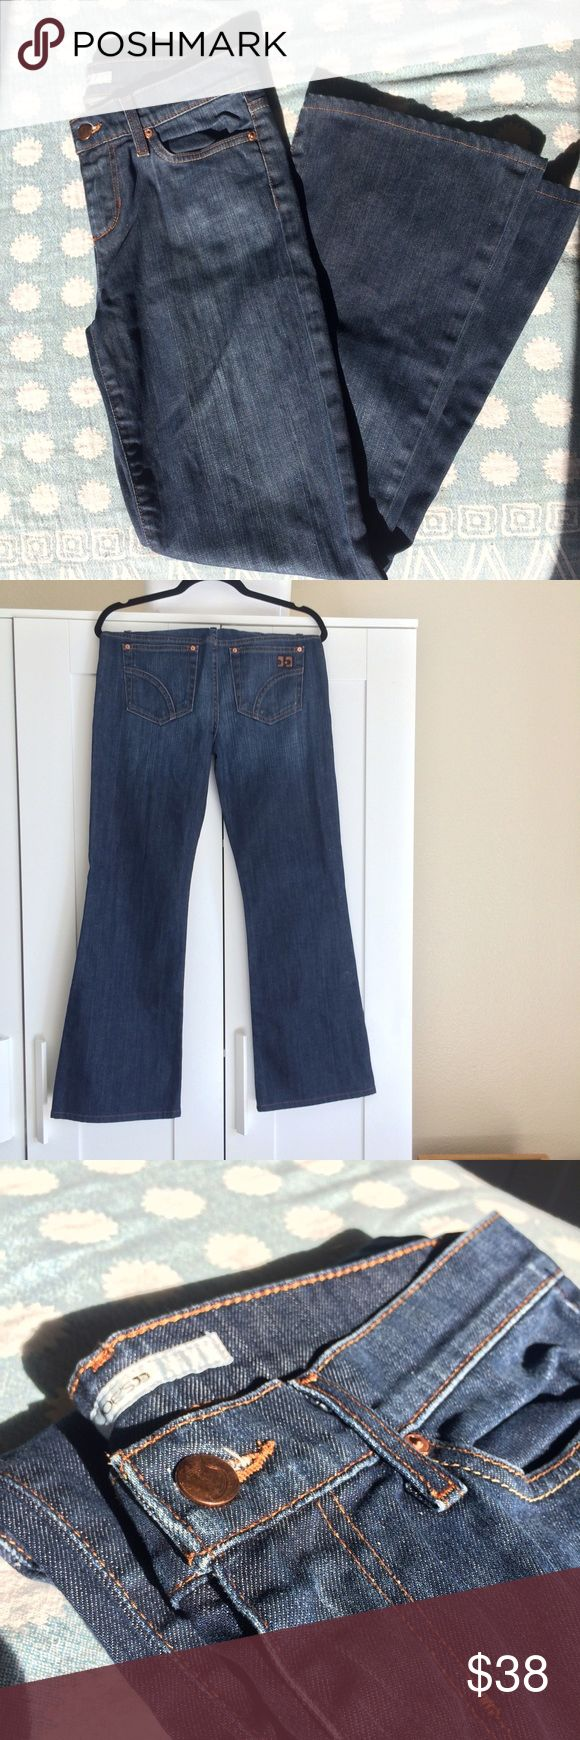 """joe's jeans size 28 wide leg provocateur dark blue perfect dark wash denim with on-trend-for-fall wide leg by joe's jeans. regular length. amazing neutral jeans for fall. excellent used condition / EUC. style name is """"wide leg provocateur"""" (see photo of inside tag). size 28. fit true to size. Joe's Jeans Jeans Flare & Wide Leg"""